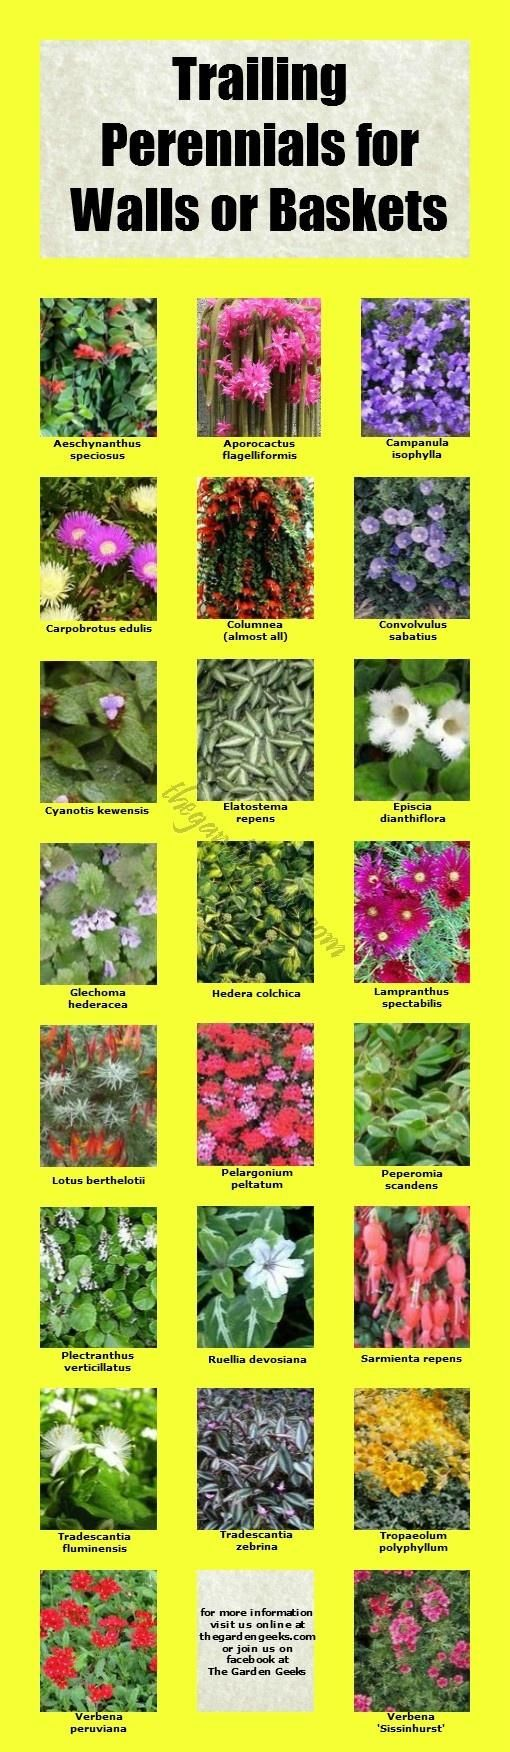 Trailing Perennials for Walls and Baskets | thegardengeeks: Gardens Beds, Mornings Glories, Gardens Idea, Flower Gardens, Gardens Geek, Gardens Yard, Trail Perennials, Diy'S Gardens, Hanging Baskets